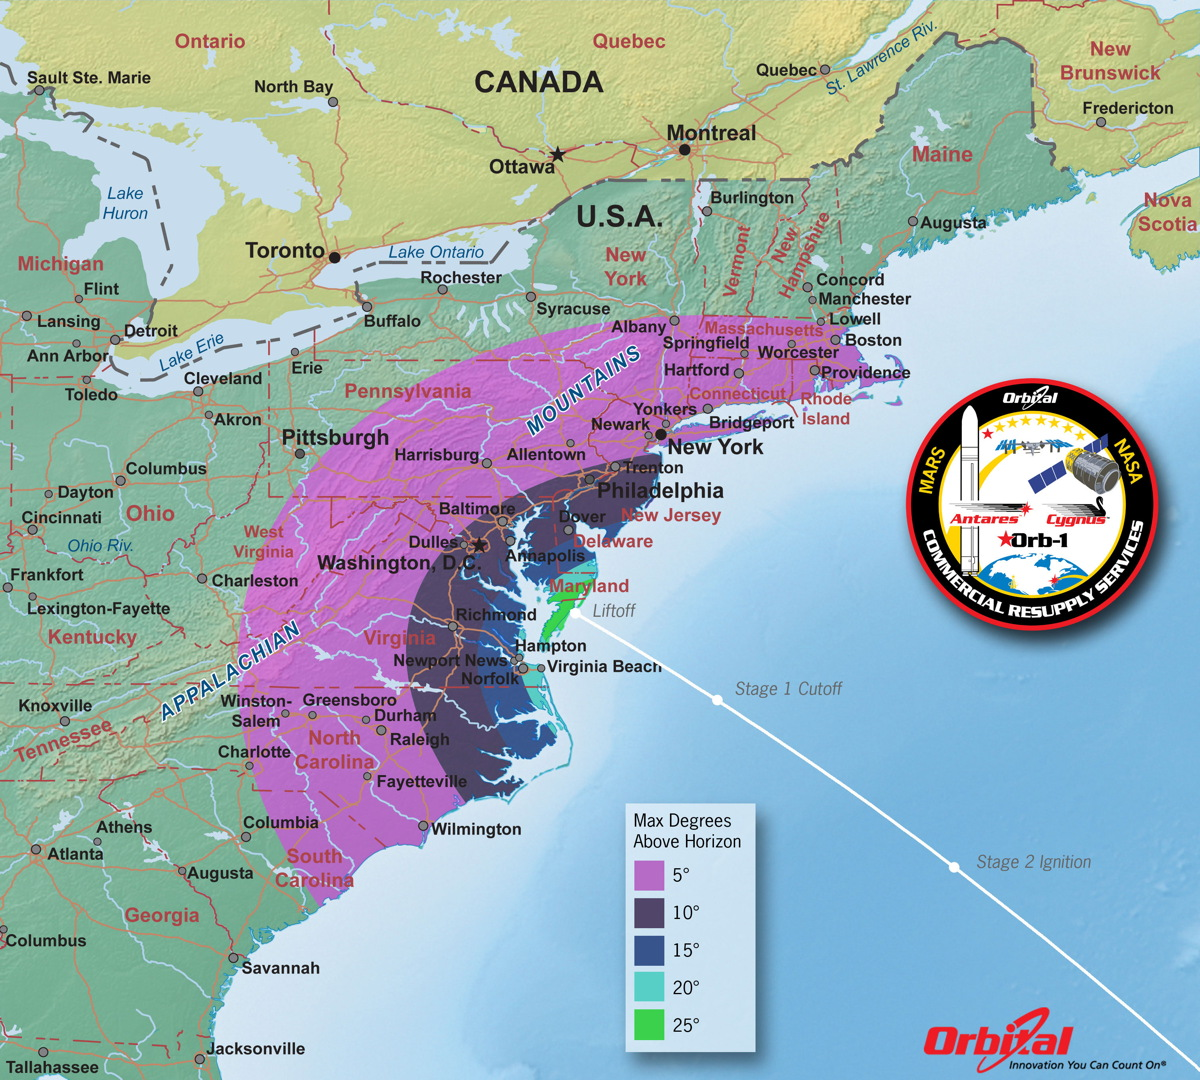 Maximum Elevation Map of Antares Launch, Dec. 18, 2013